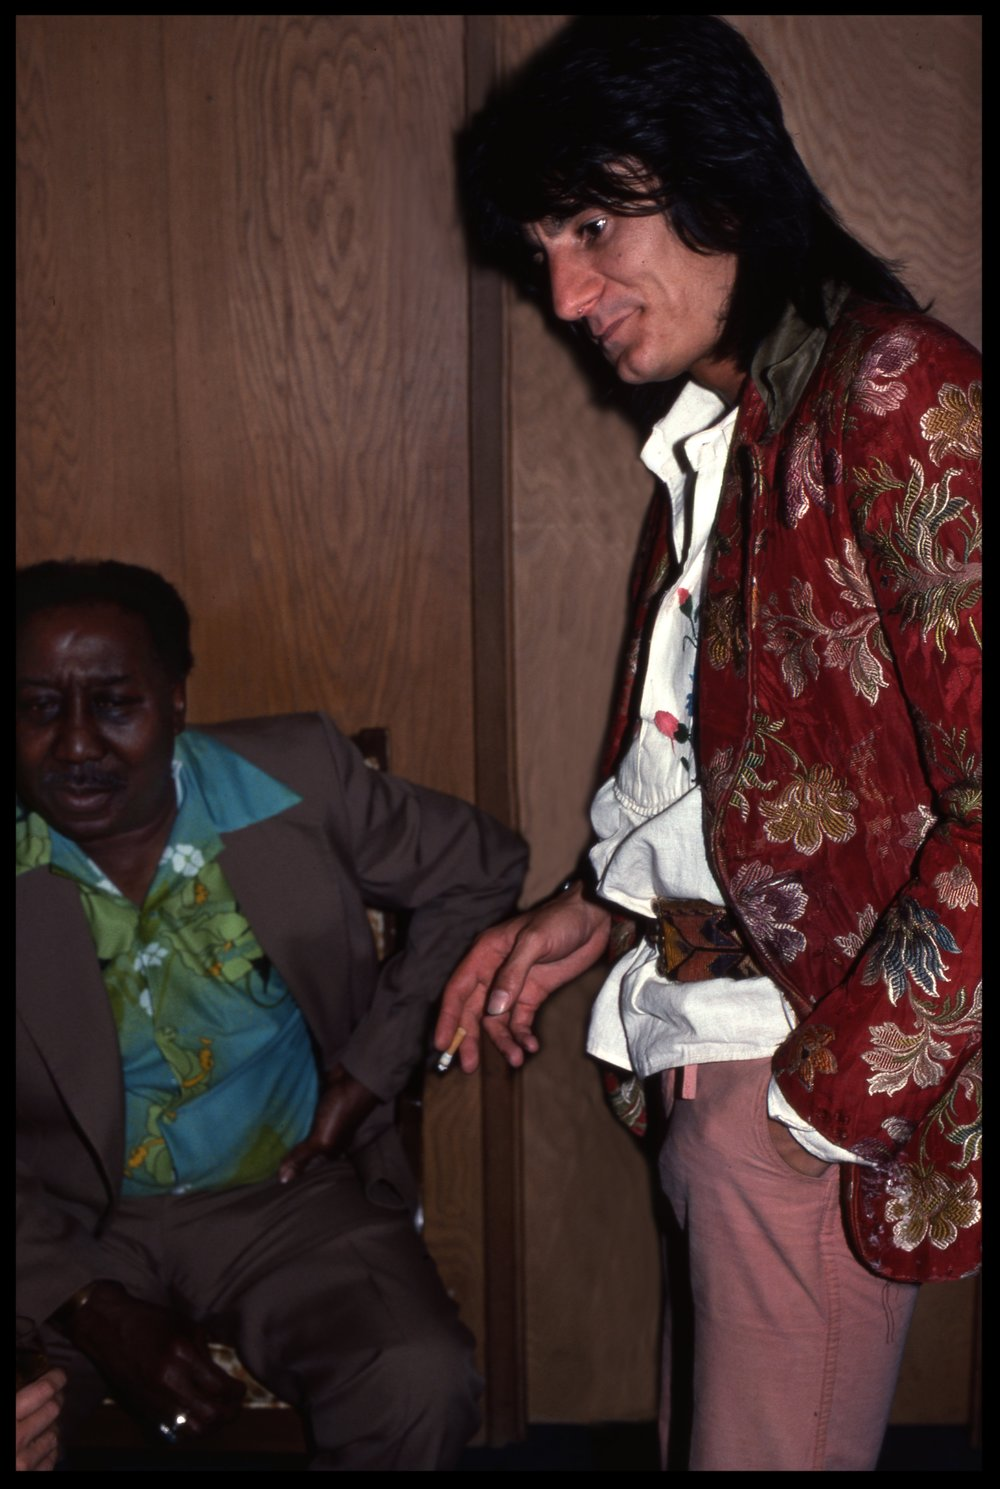 Muddy Waters and Ronnie Wood of the Rolling Stones c.1975 from original 35mm transparency #muddywaters #ronniewood #rollingstones #fenderguitar #gibsonguitar #rockandrollphoto #fineartphoto #fineart